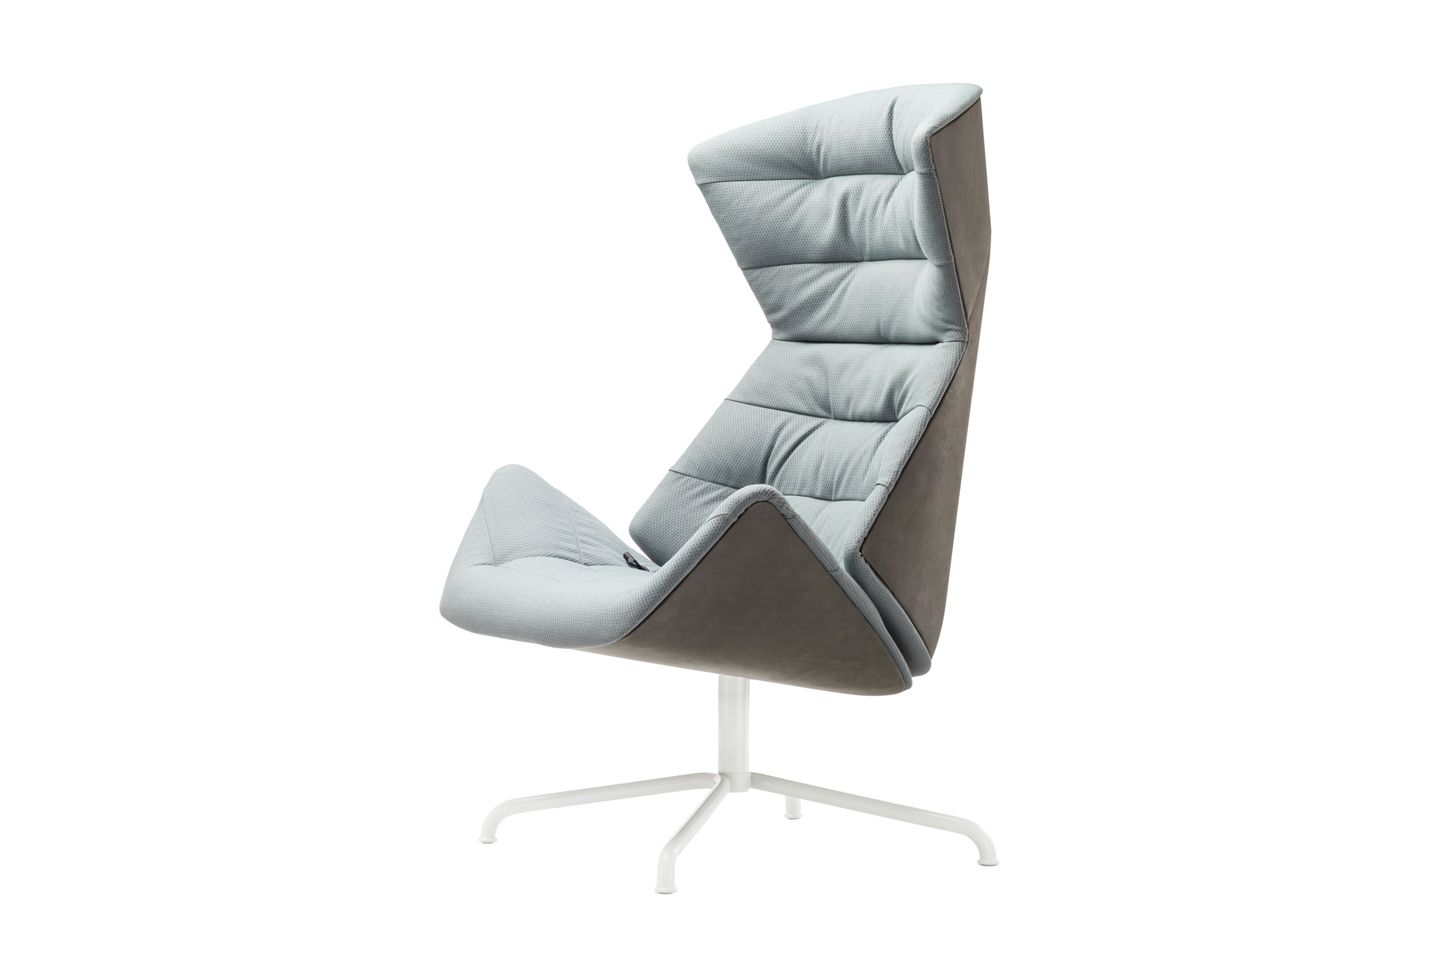 Thonet Loungefauteuil